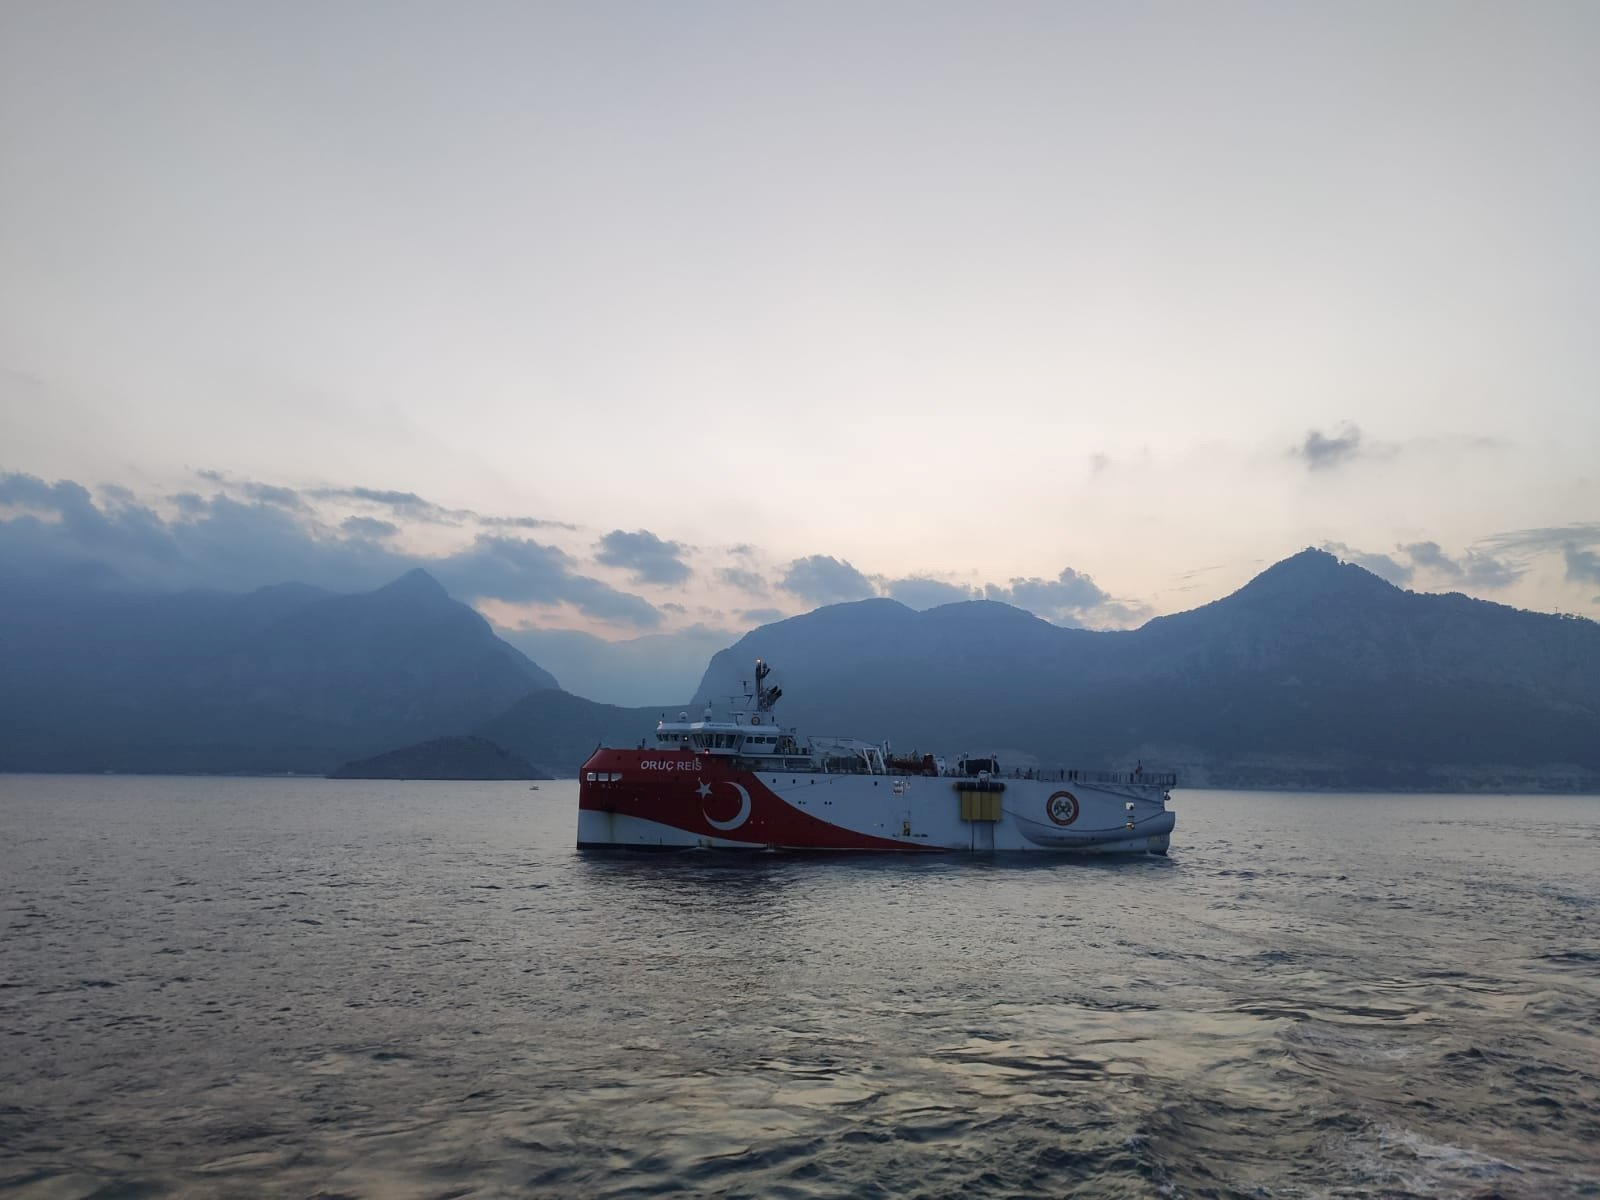 The Turkish seismic research vessel Oruç Reis sails through the Mediterranean after leaving a port in Antalya, Turkey, Aug. 10, 2020. (Reuters Photo)